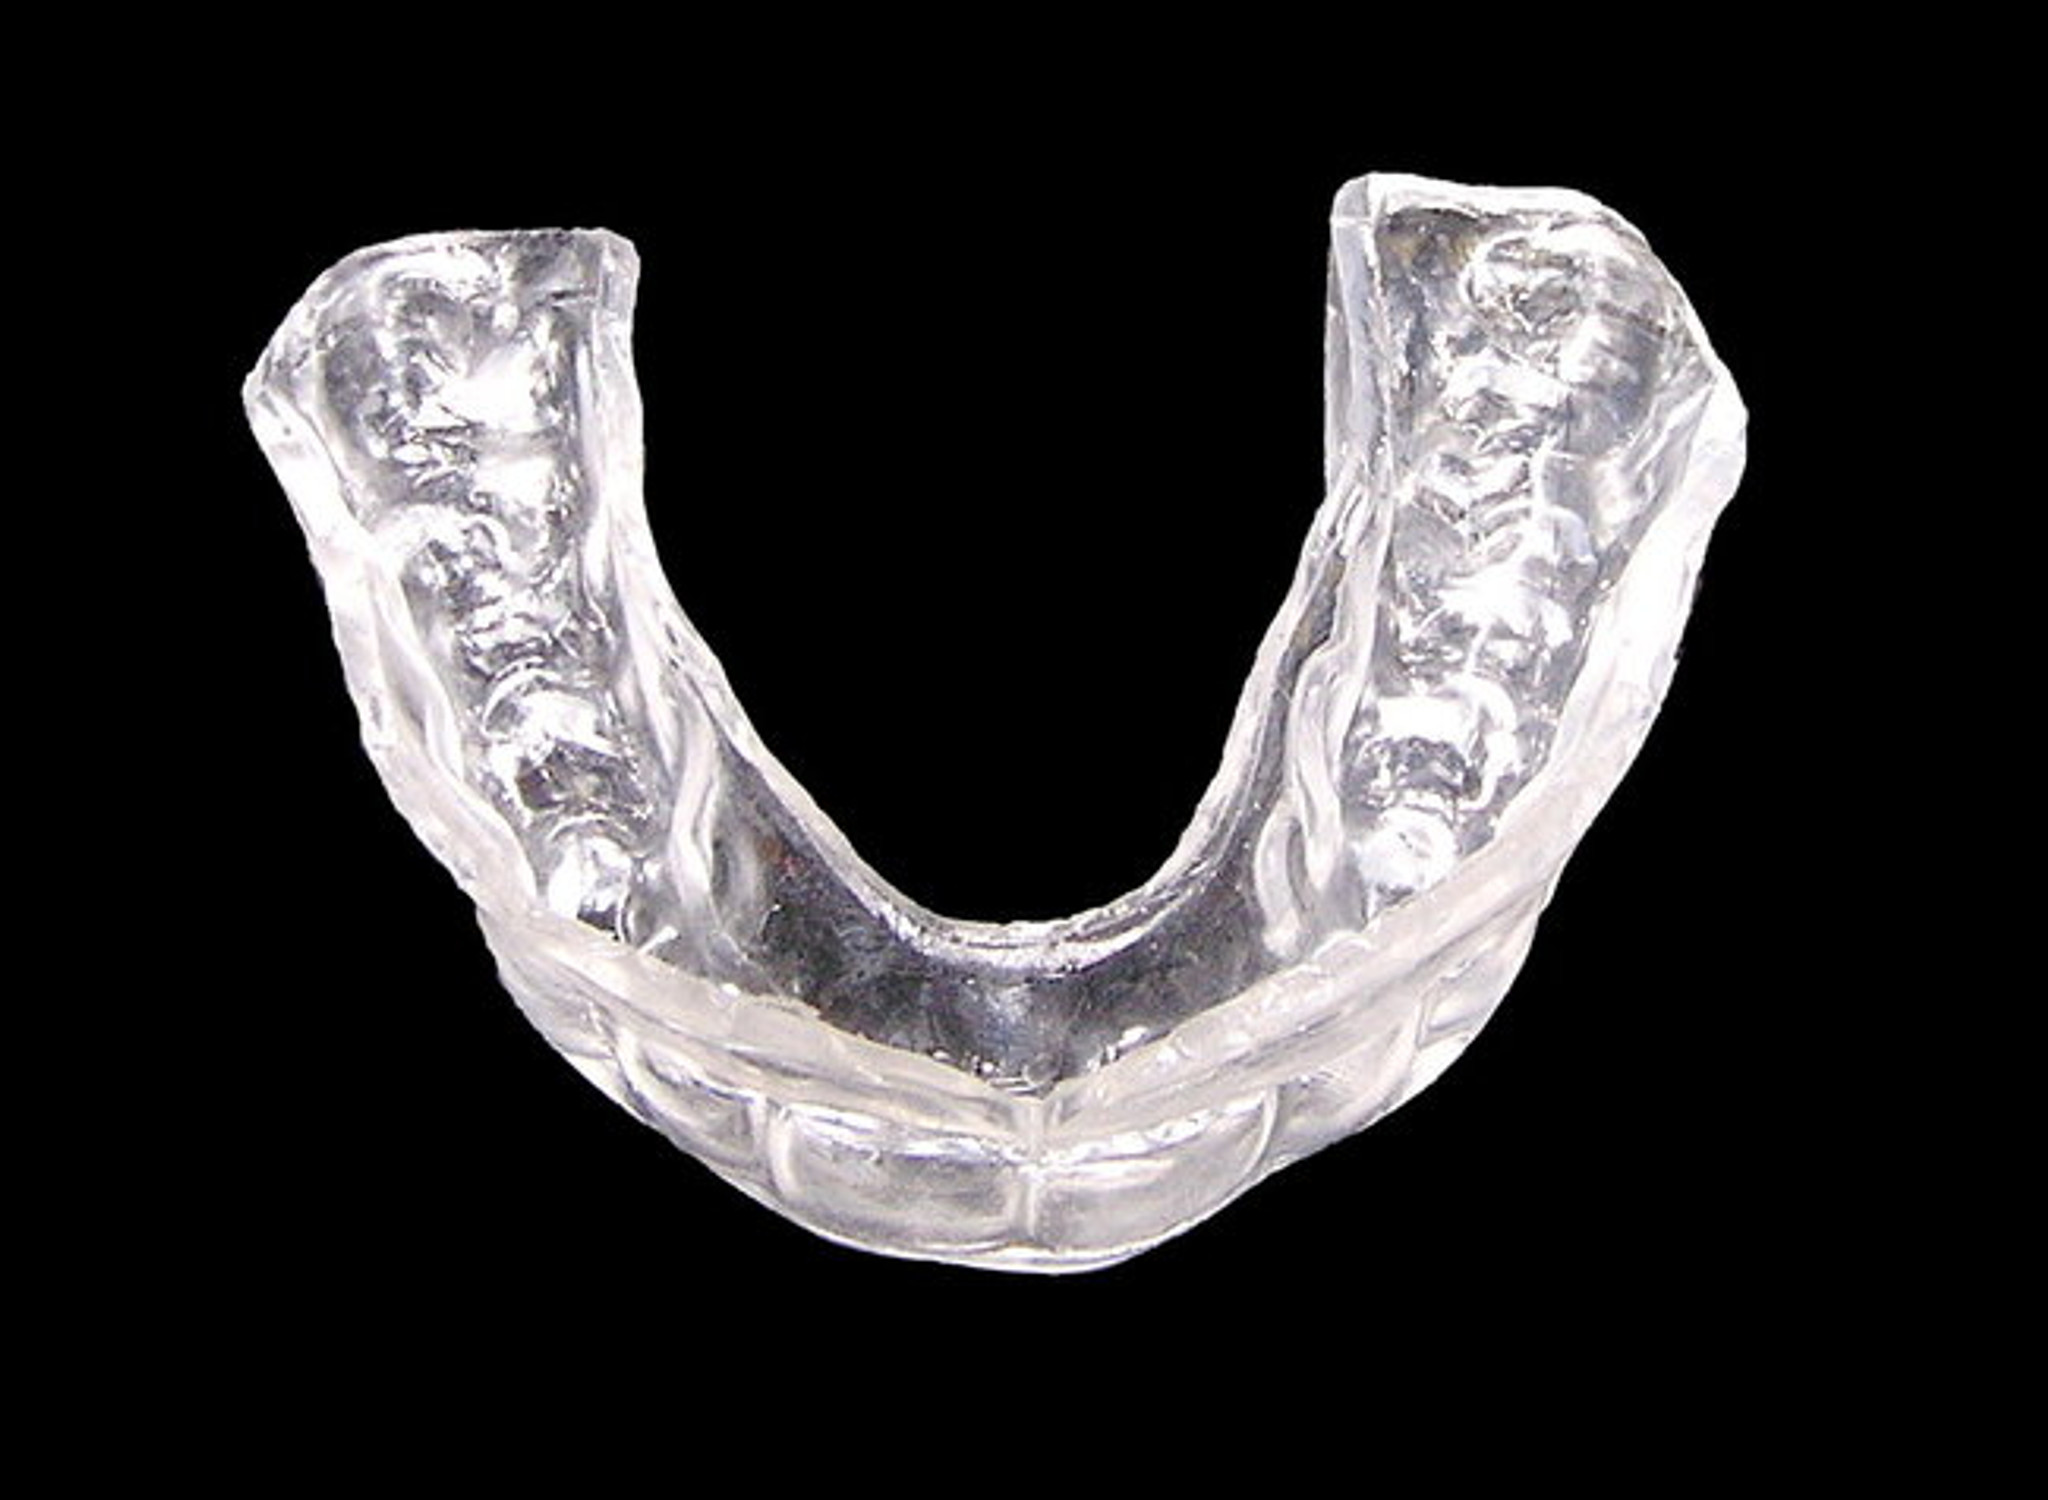 LiteBITE Basketball Mouthguard and for all sports for teeth protection